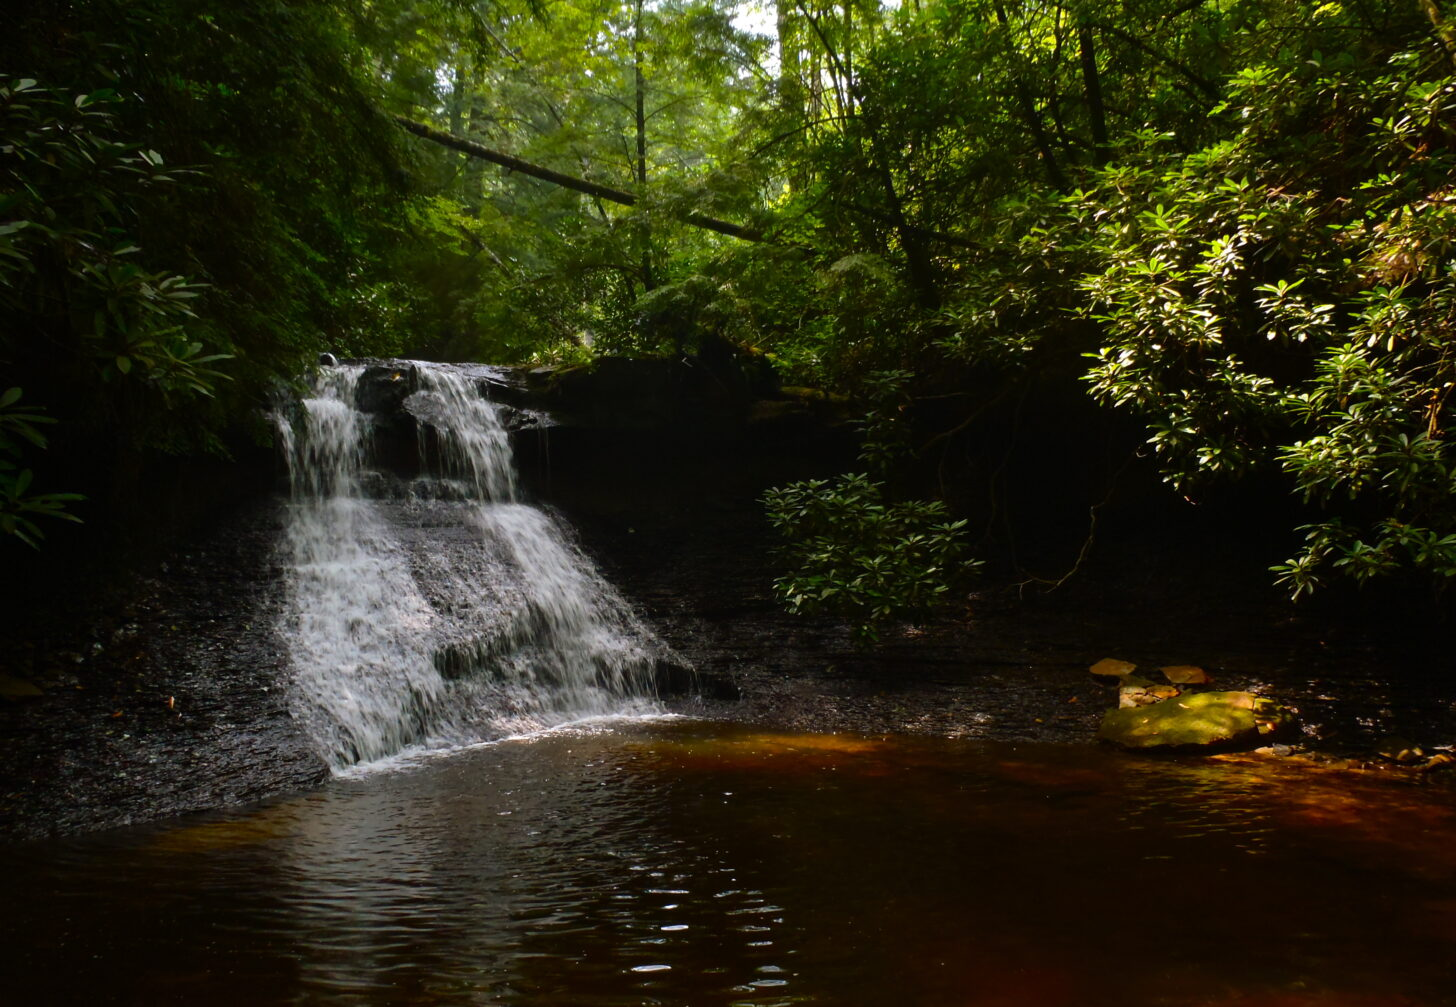 a lush waterfall surounded by green foilage.